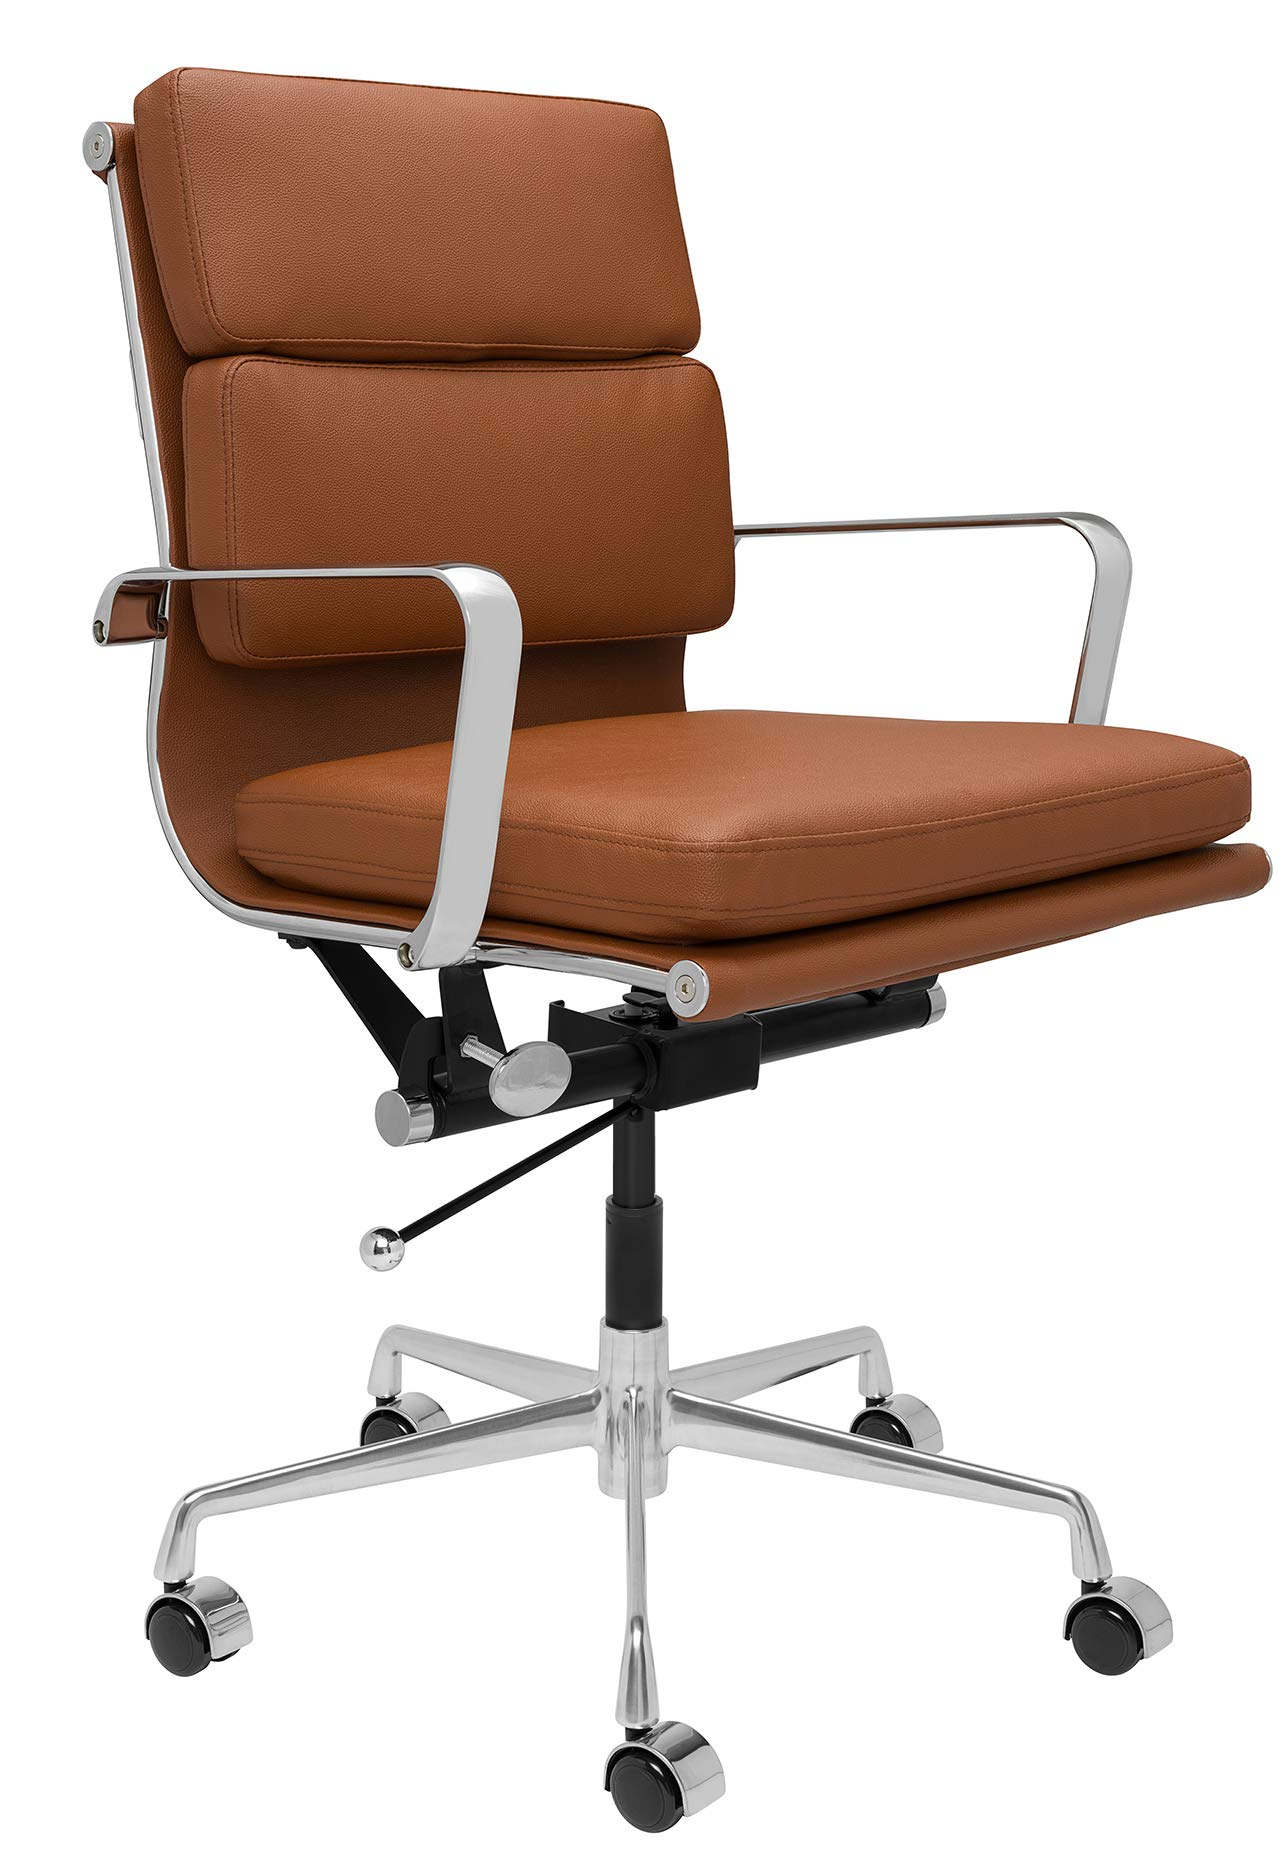 SOHO Soft Pad Management Chair (Brown) by Laura Davidson Furniture